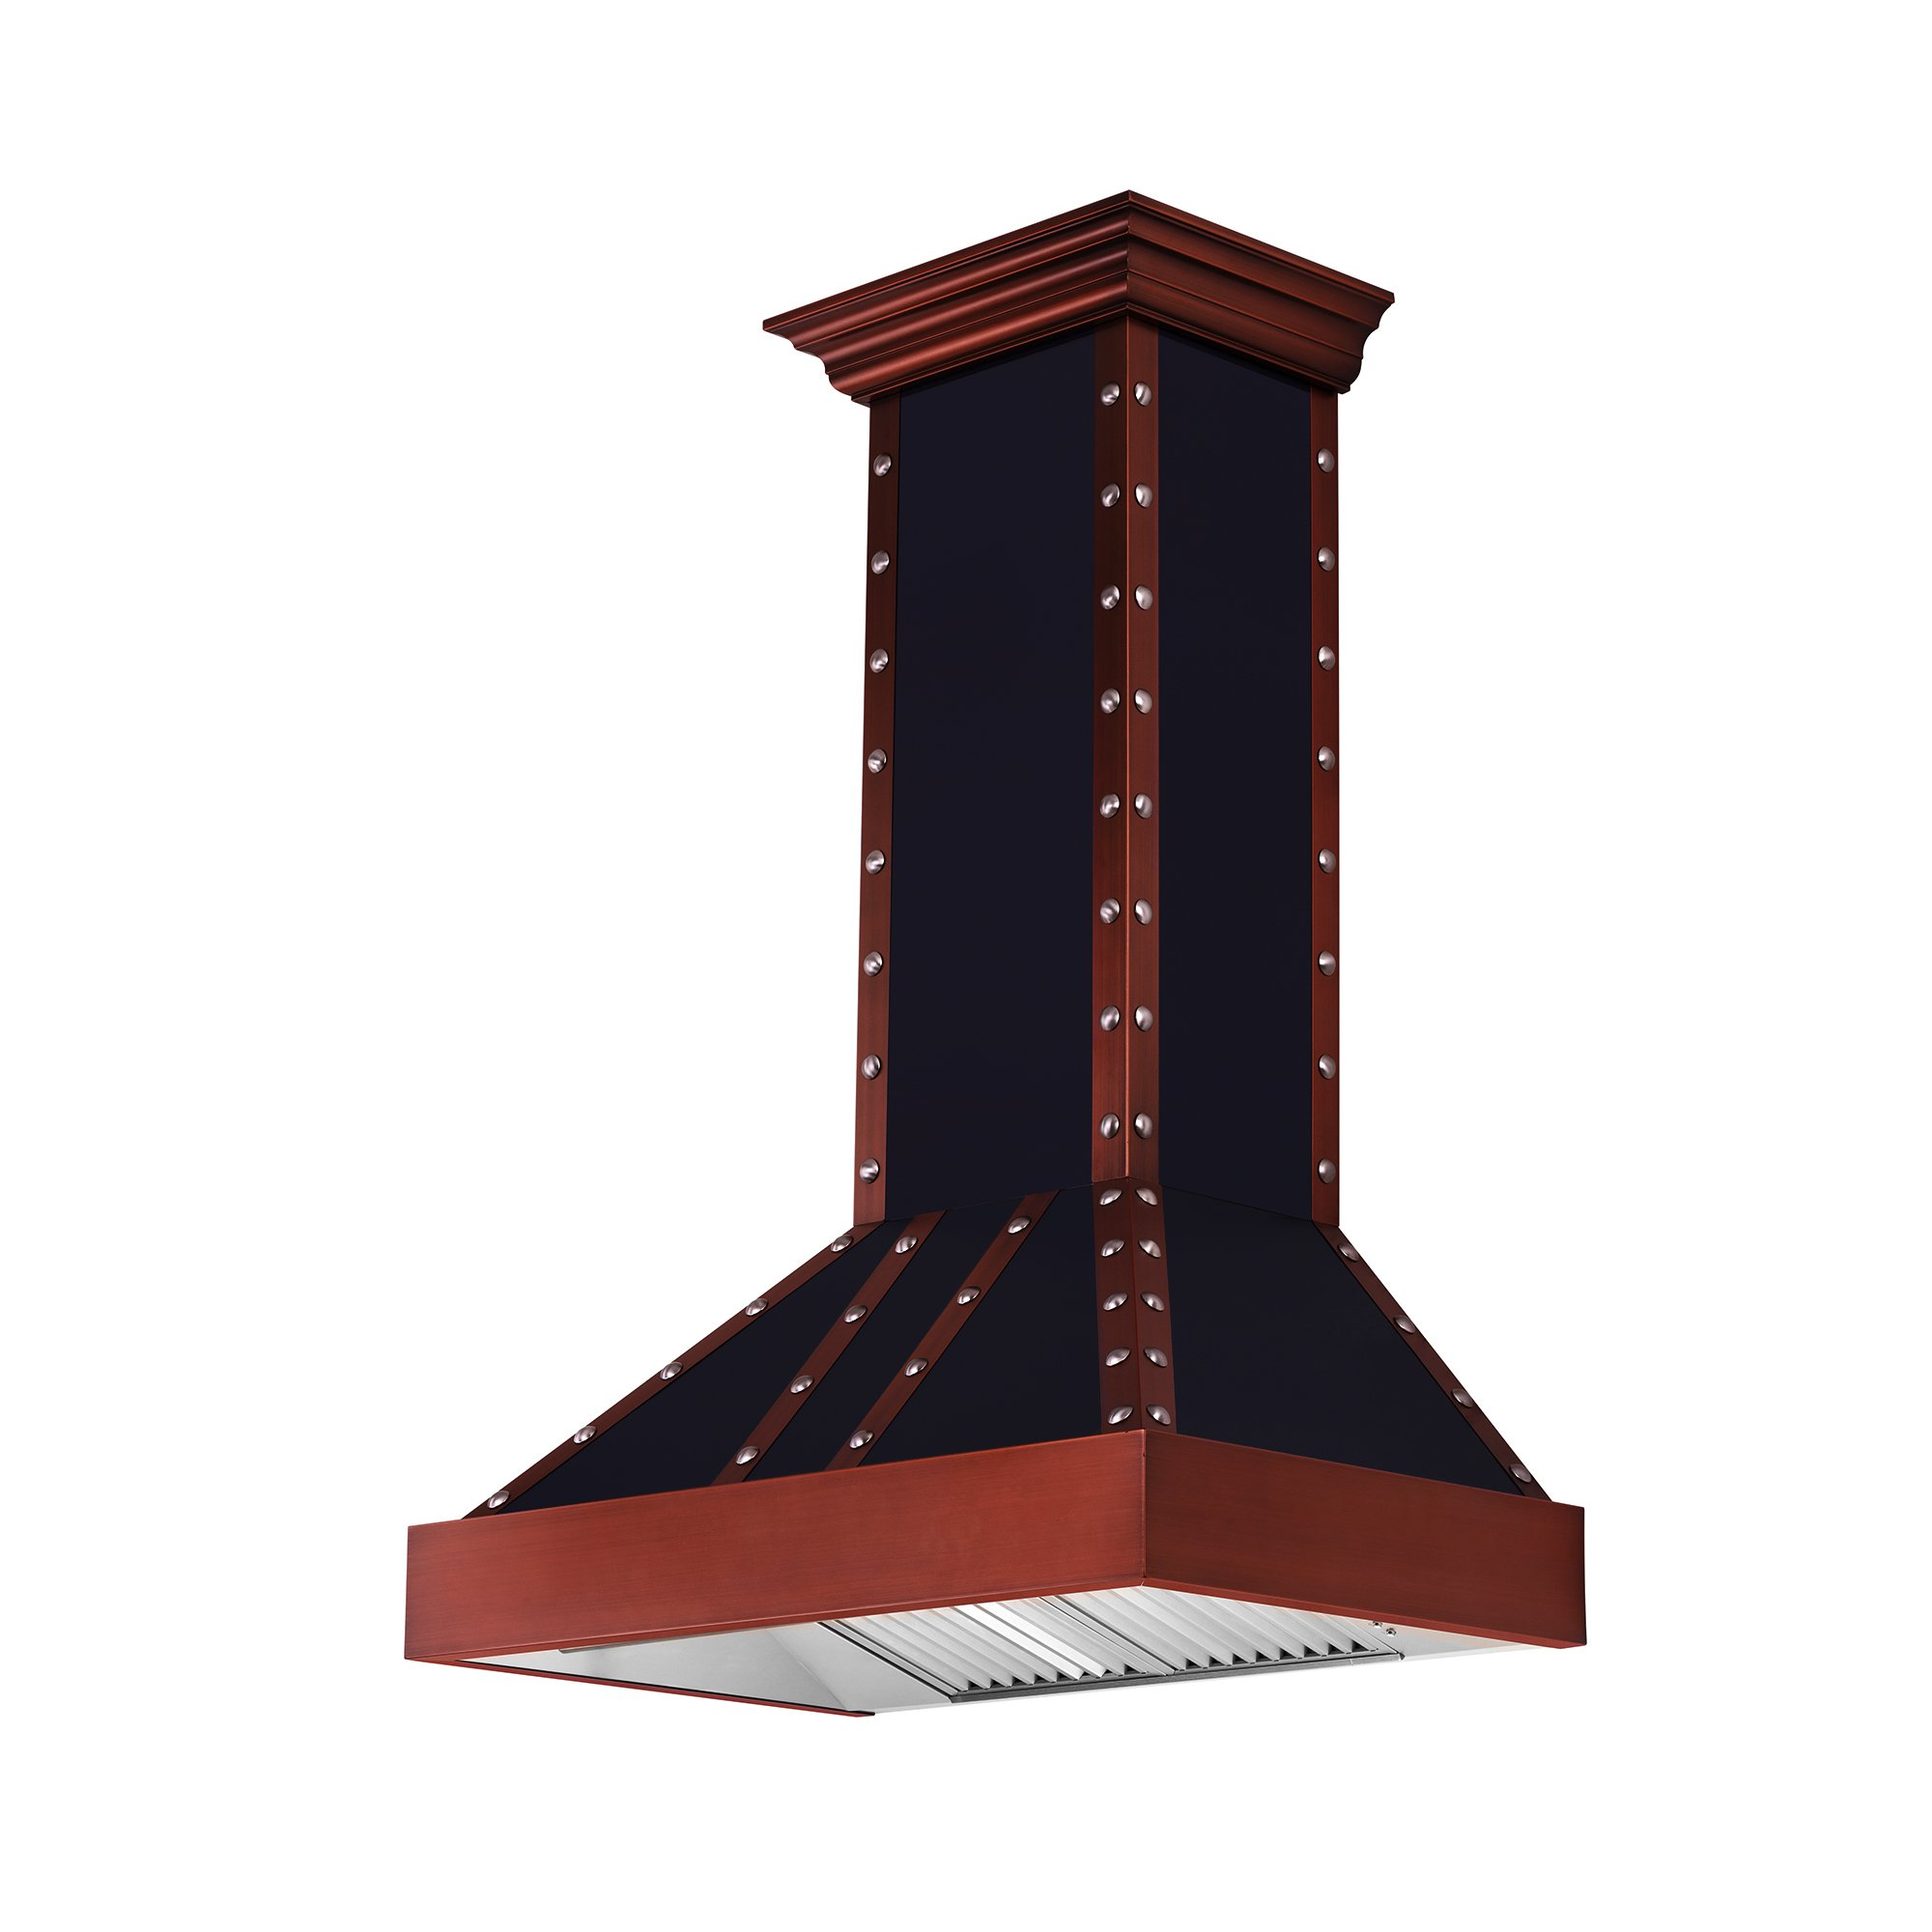 Z Line 655-BCCCS-30 30'' 900 CFM Designer Series Wall Mount Range Hood, Oil-Rubbed Bronze